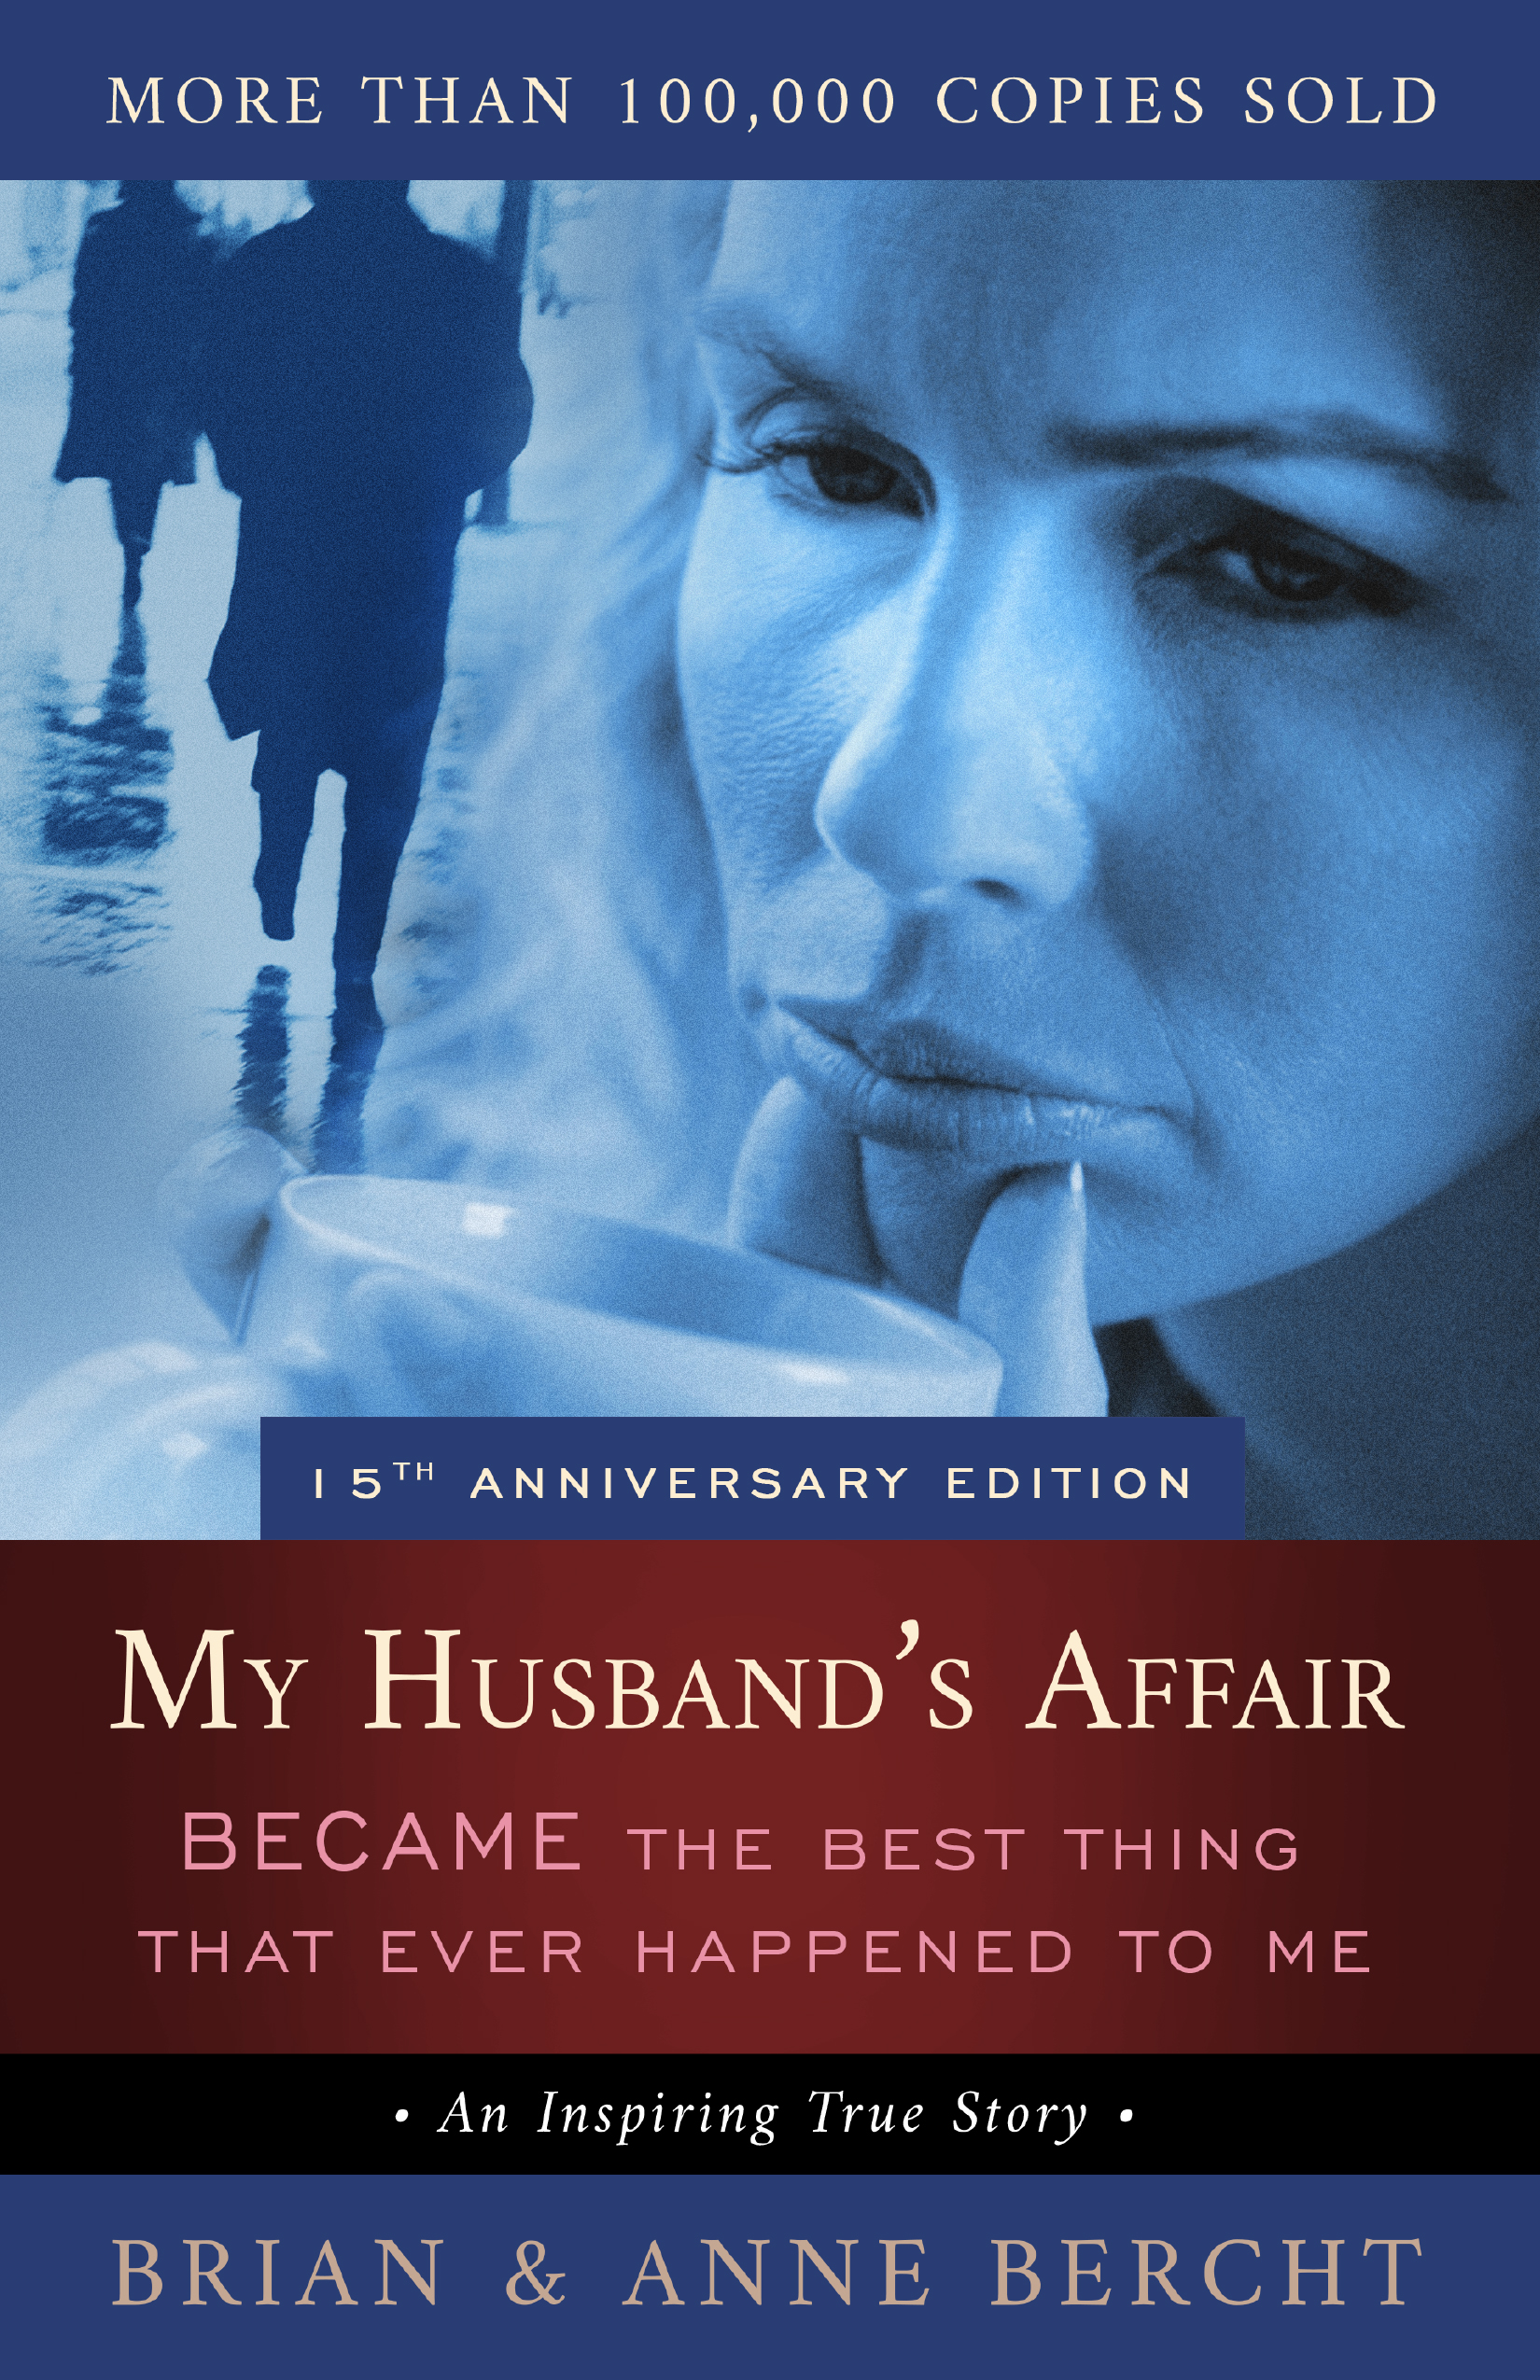 Book cover of My Husband's Affar Became the Best Thing That Ever Happened to Me